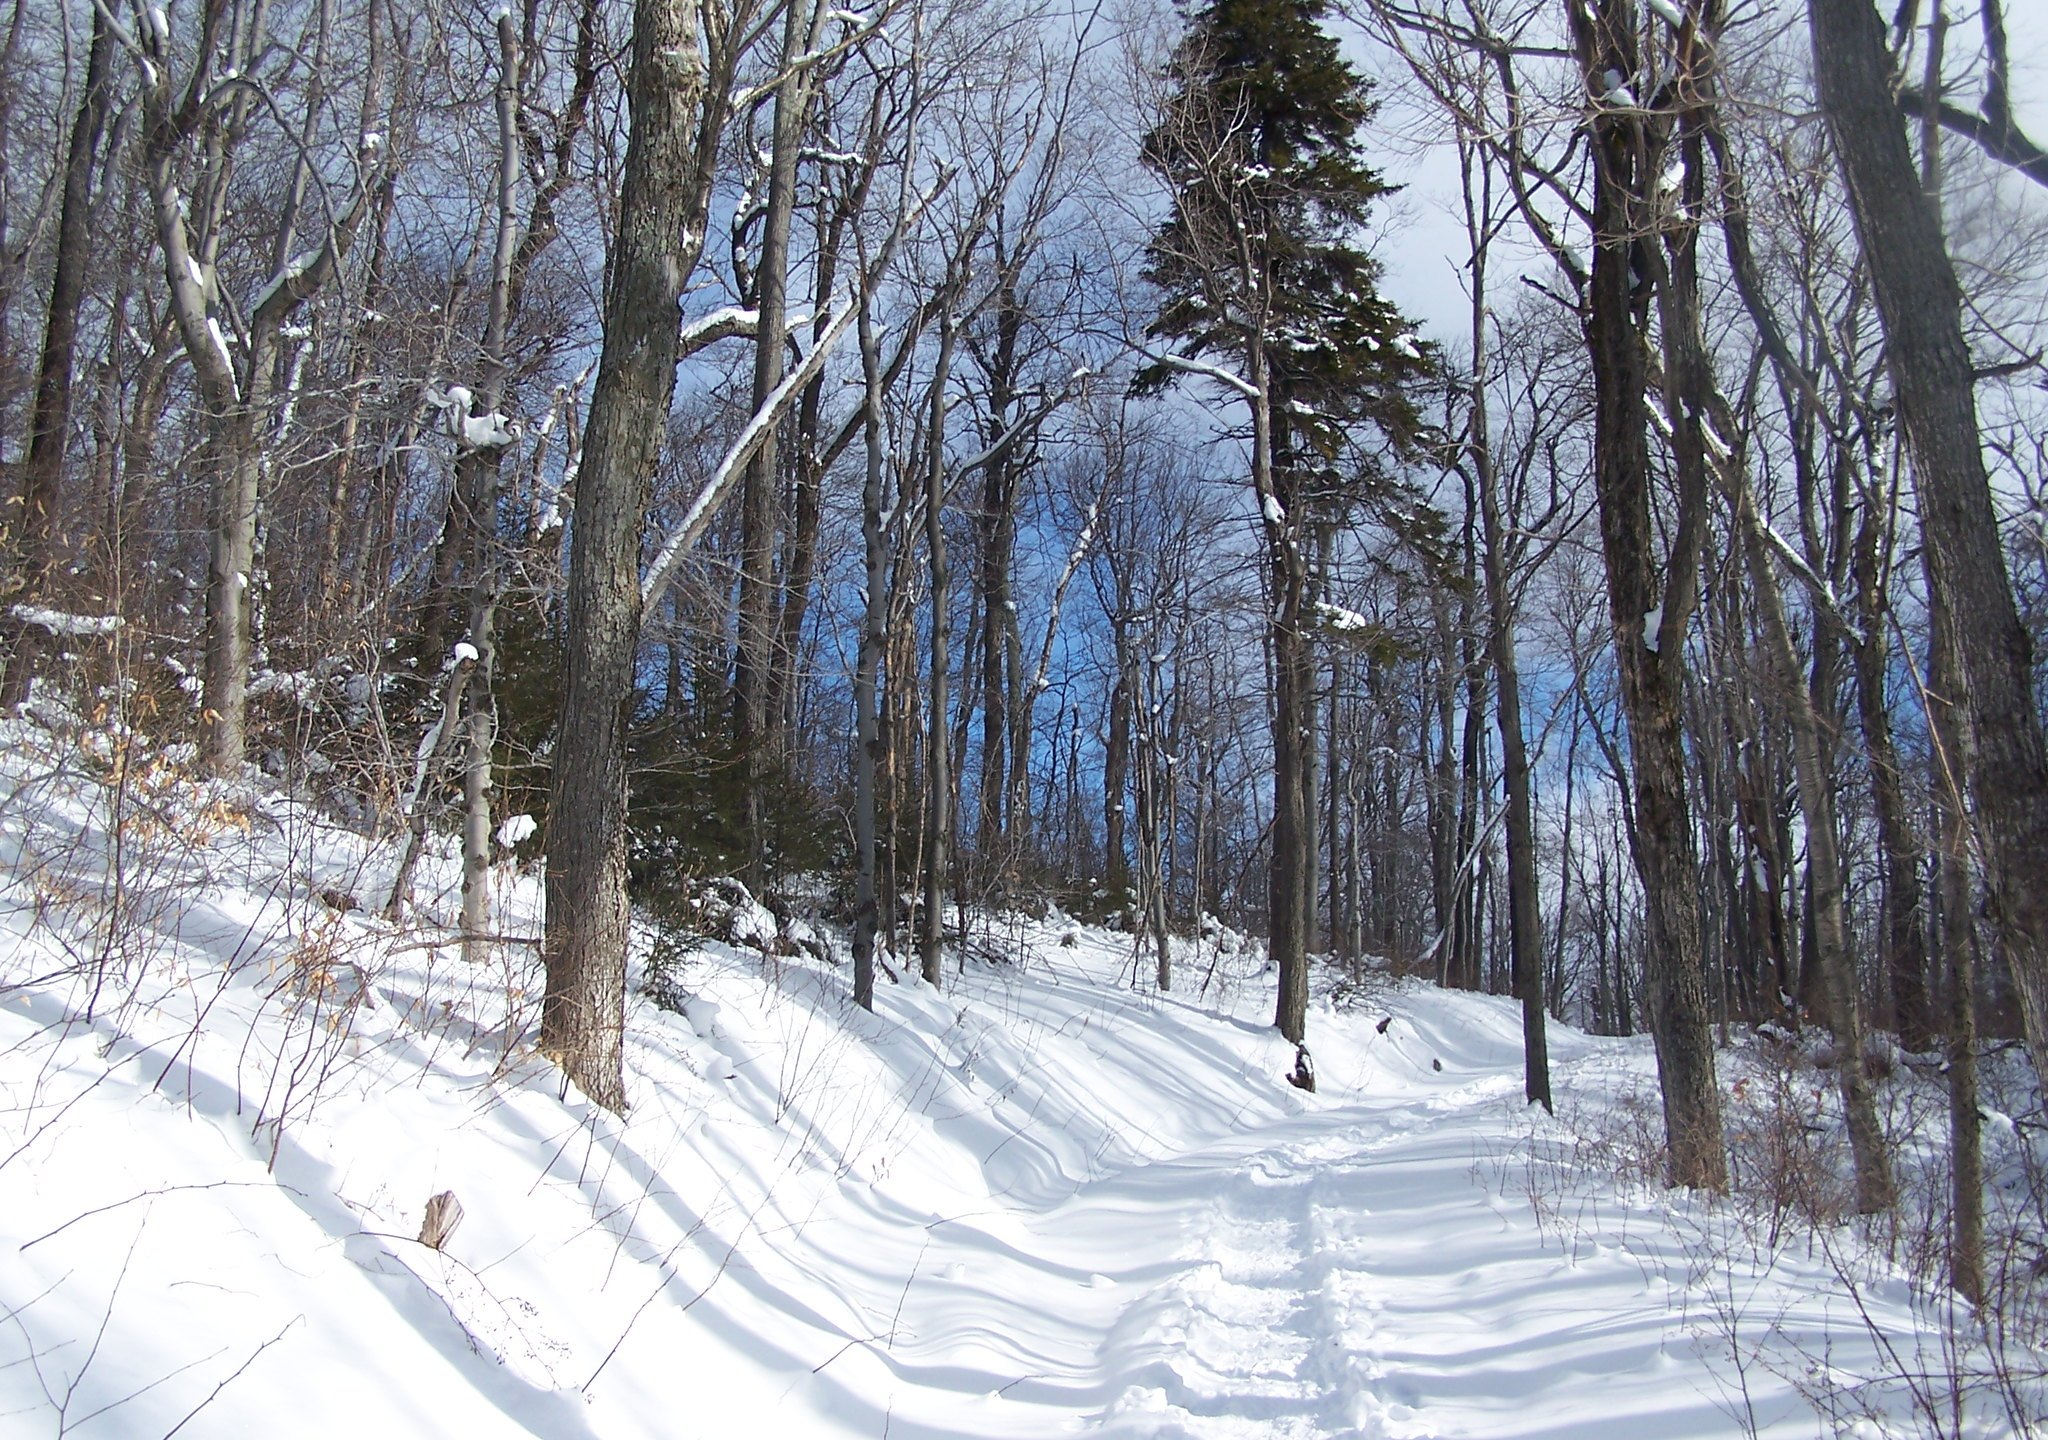 A snowy trail at Hunter Mountain in 2010. (Andy Arthur / Flickr / CC BY 2.0)